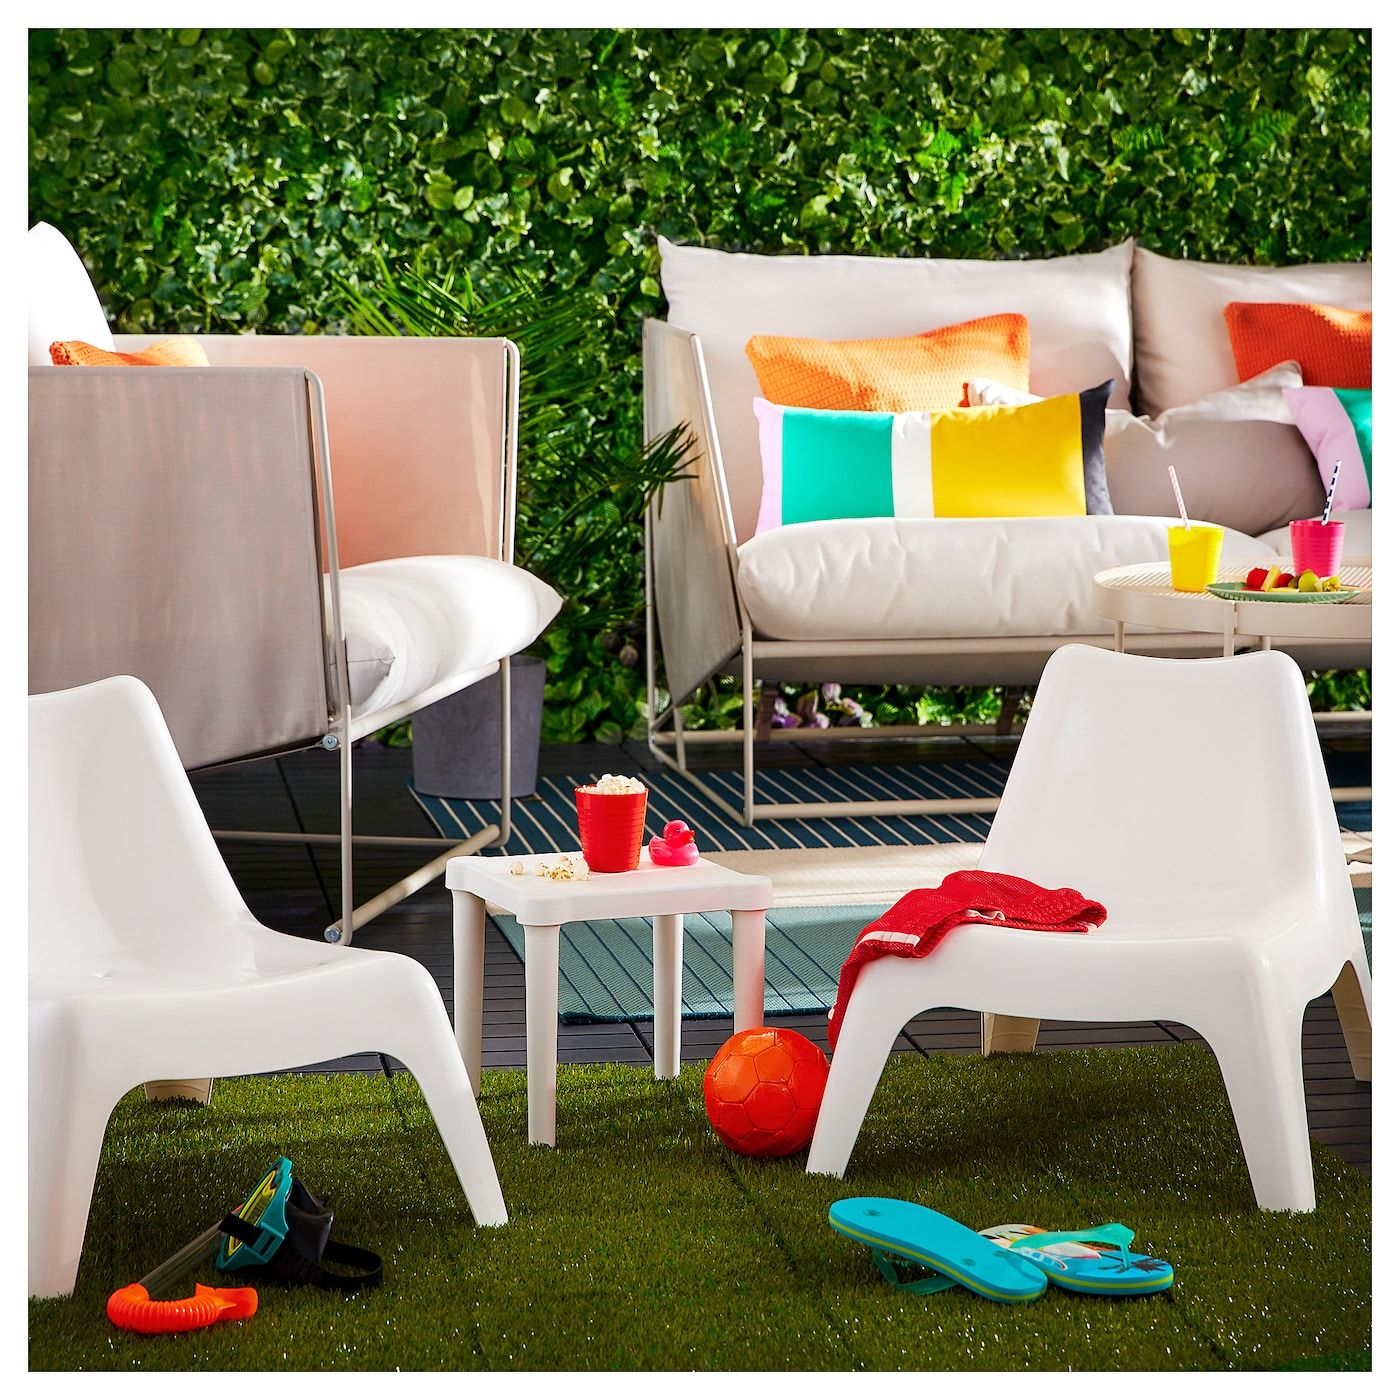 Groovy Bunso Childrens Chair Outdoor White In 2019 Backyard Caraccident5 Cool Chair Designs And Ideas Caraccident5Info